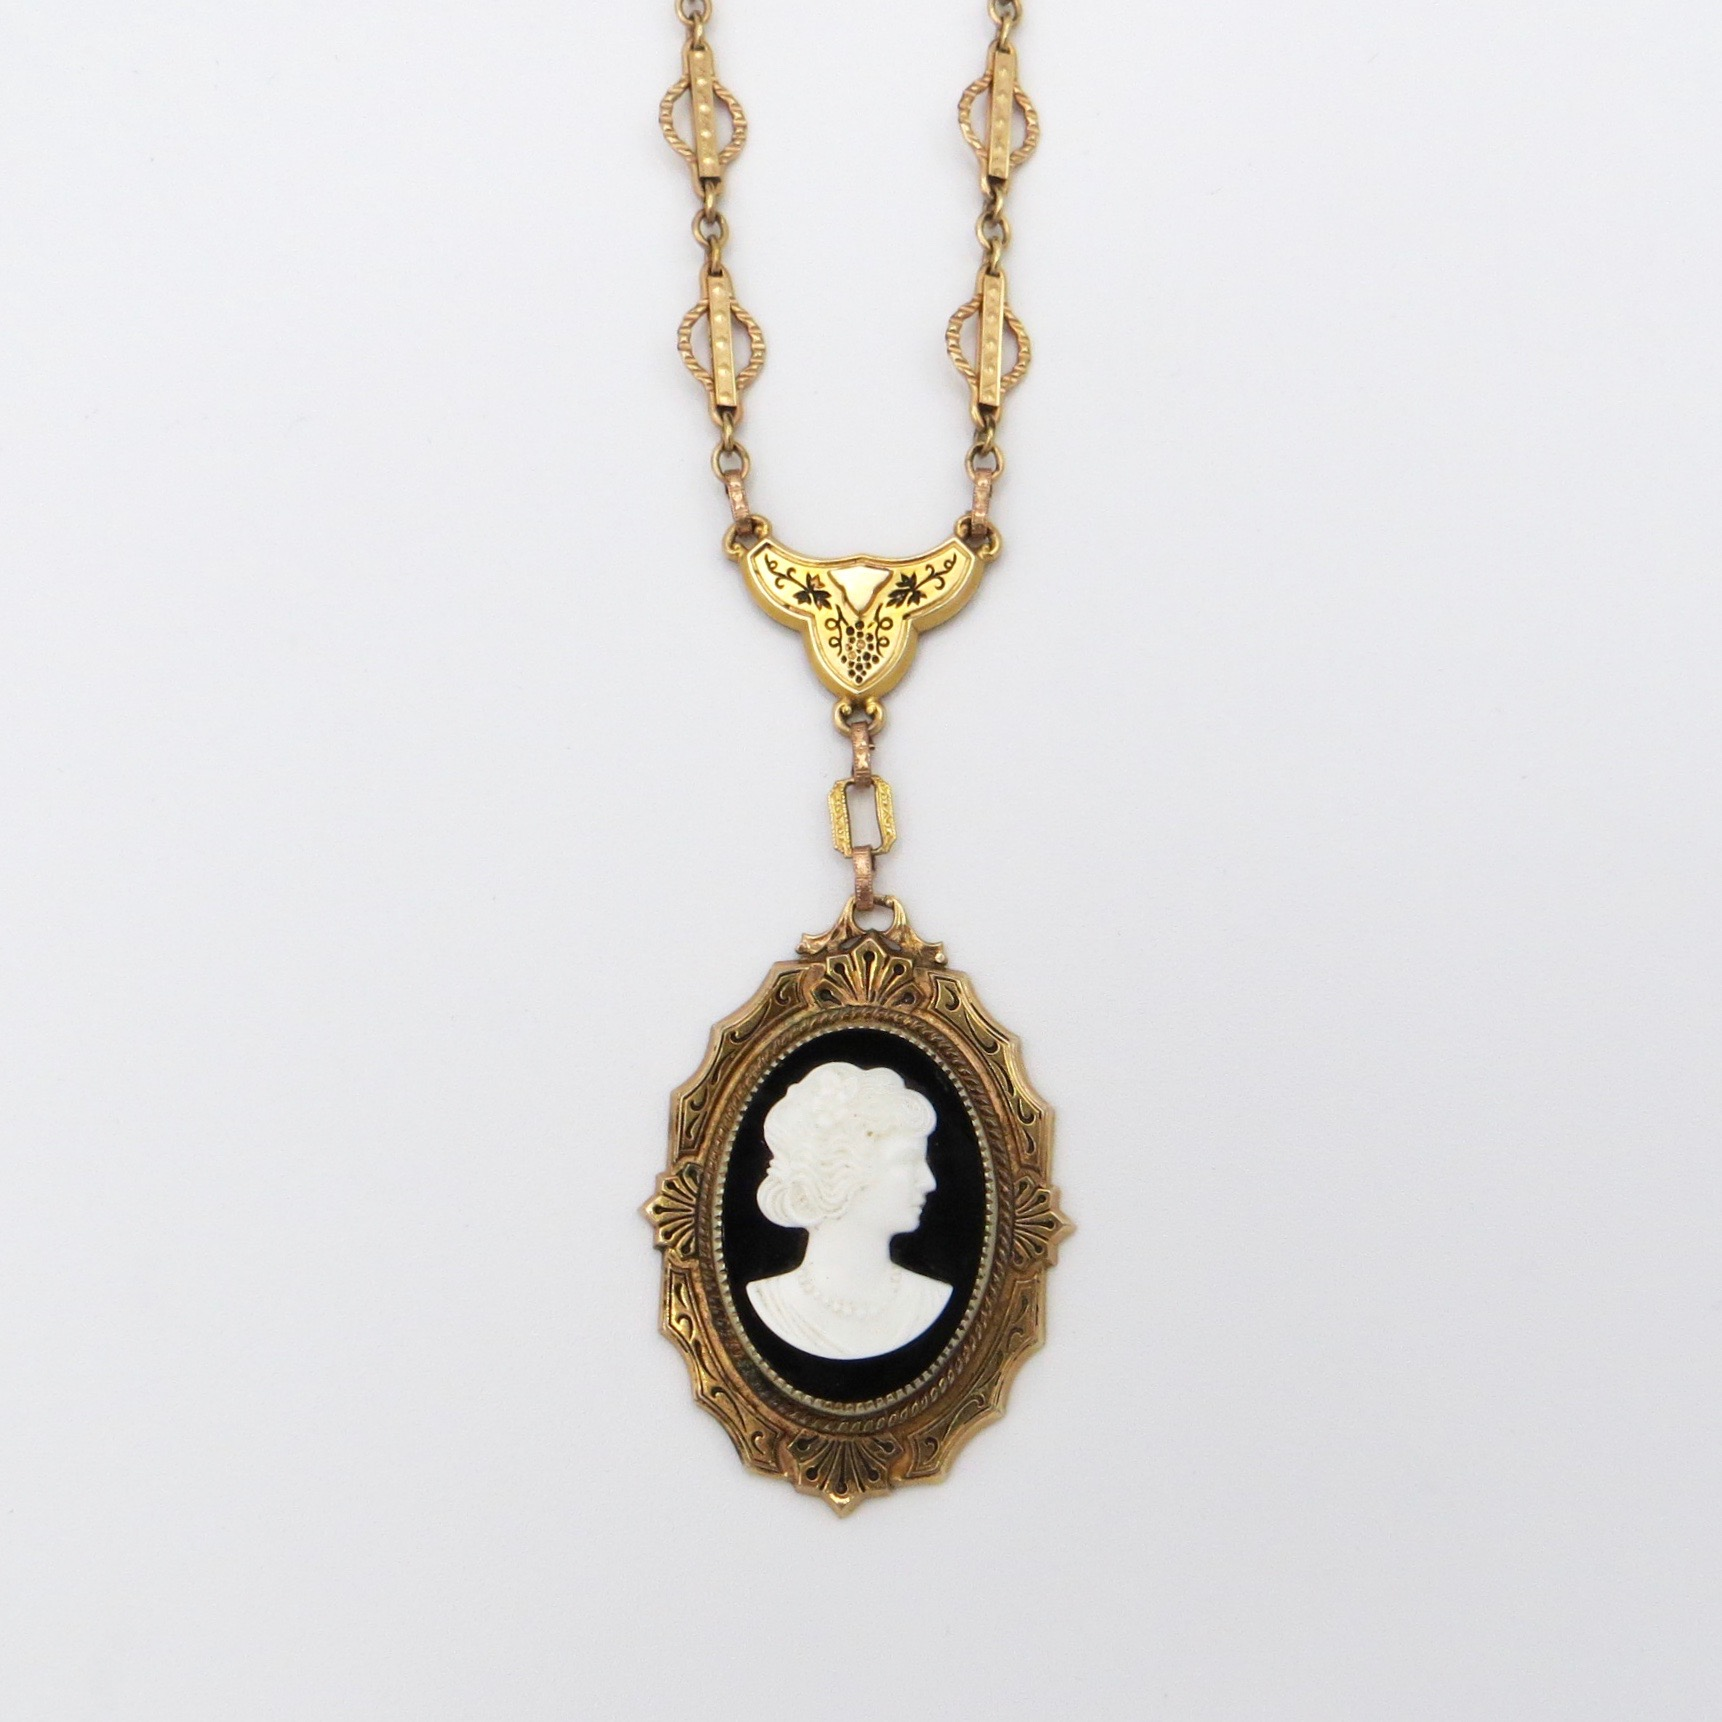 1920s Cameo Necklace